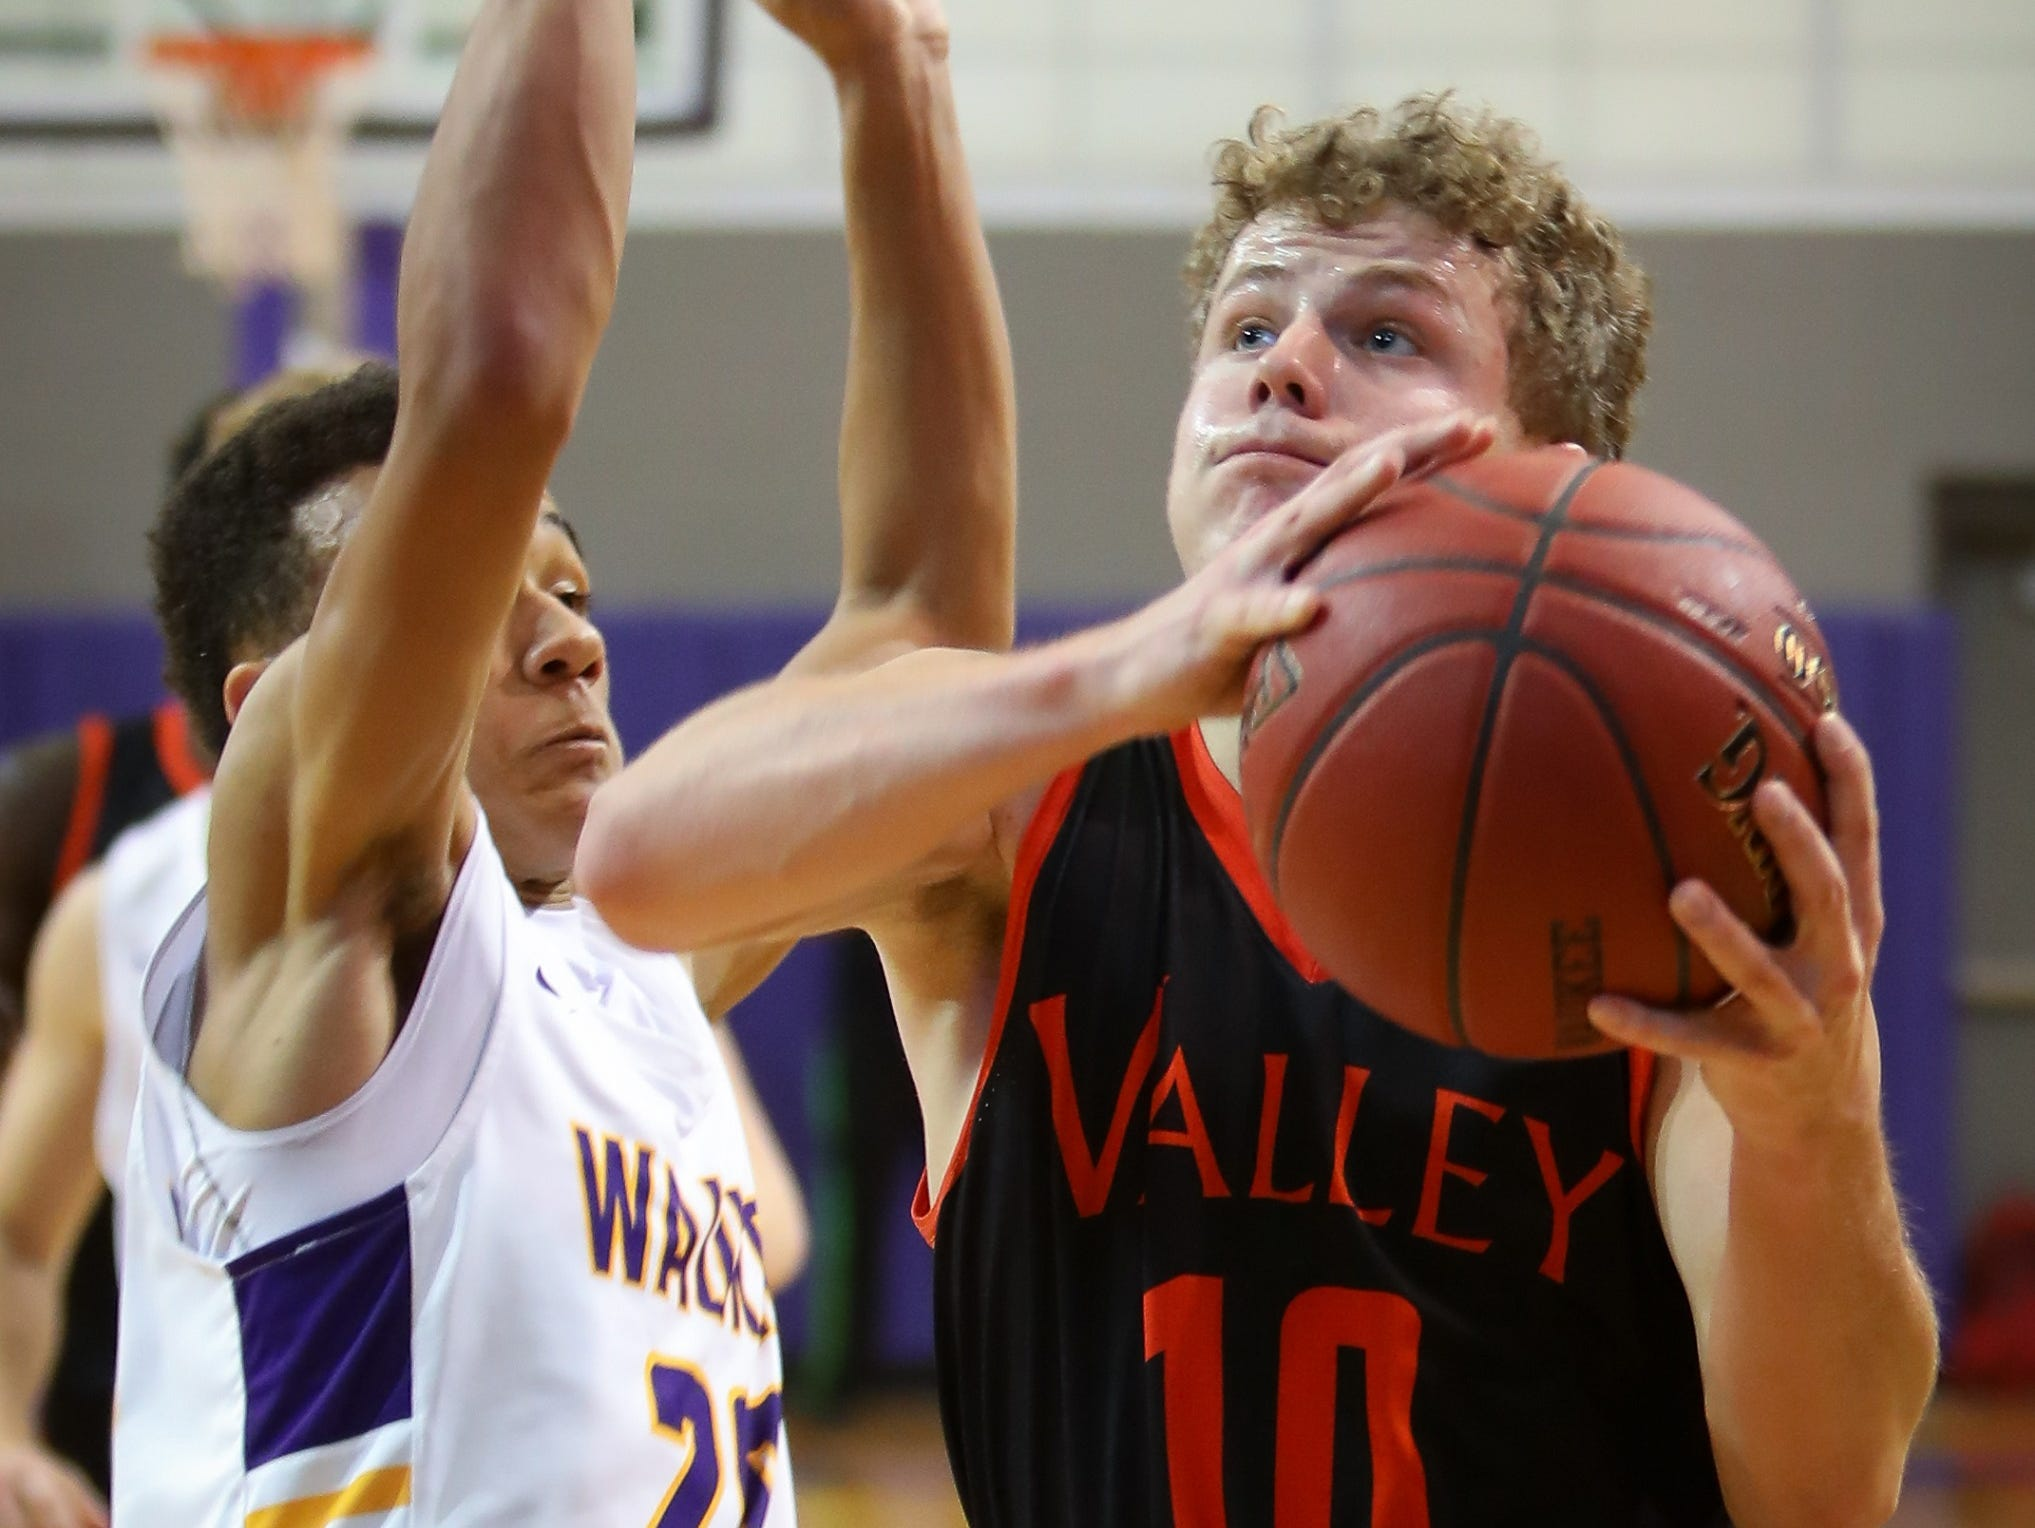 Valley senior Sam Stevens drives to the basket during a boys high school basketball game between the Valley Tigers and the Waukee Warriors at Waukee High School on Dec. 14, 2018 in Waukee, Iowa.